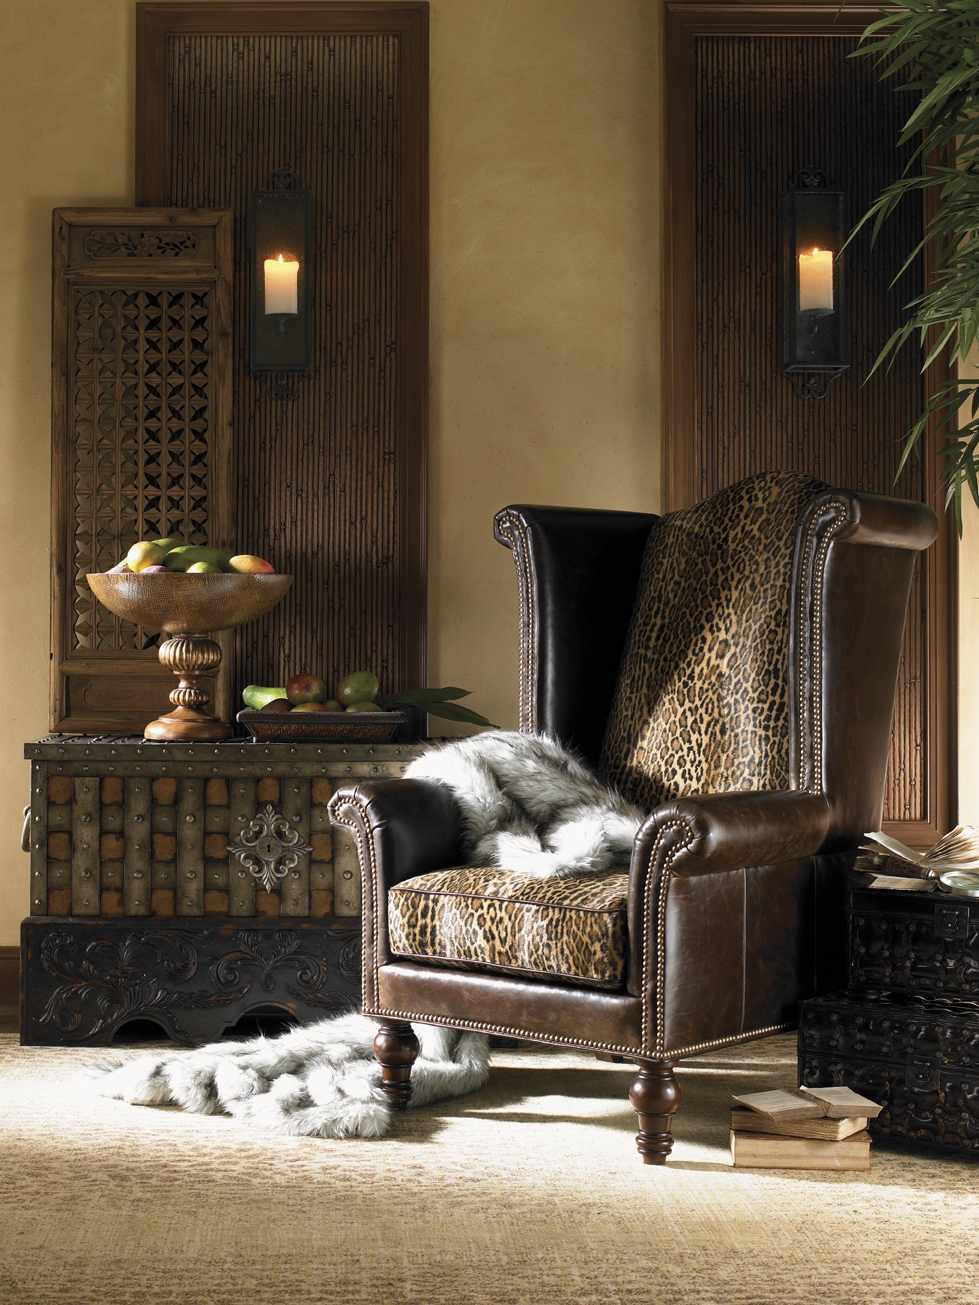 How to Incorporate Animal Print Fabrics with your Décor ... Leopard Print Furniture Home on leopard print living room furniture, leopard chair, beauty furniture home, paisley furniture home, leopard reclining sofa, leopard print furniture and accessories, zebra furniture home, leopard print retro furniture, animal print for the home, beach furniture home,